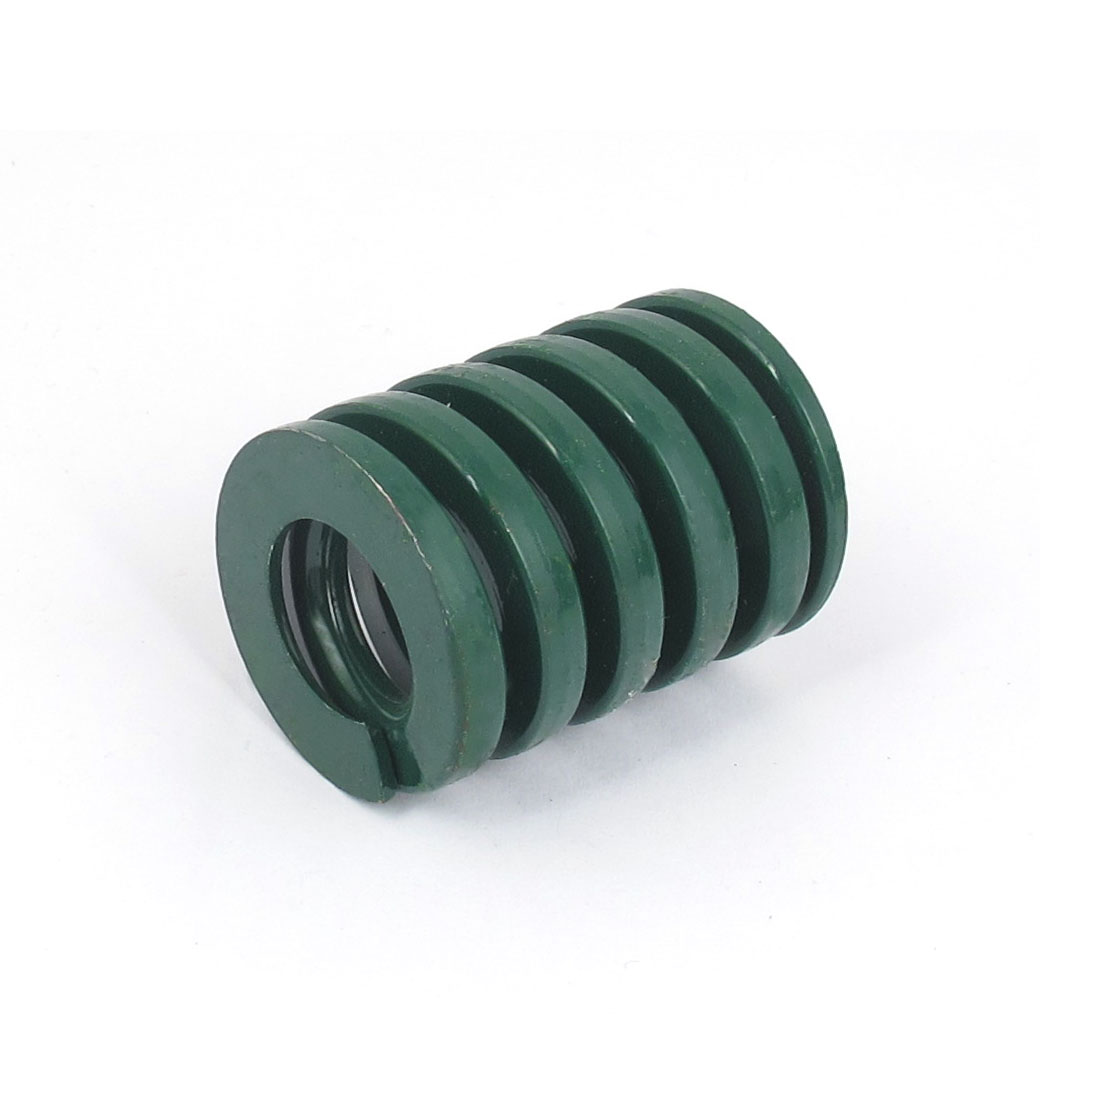 35mmx45mm Chromium Alloy Steel Heavy Load Die Spring Green